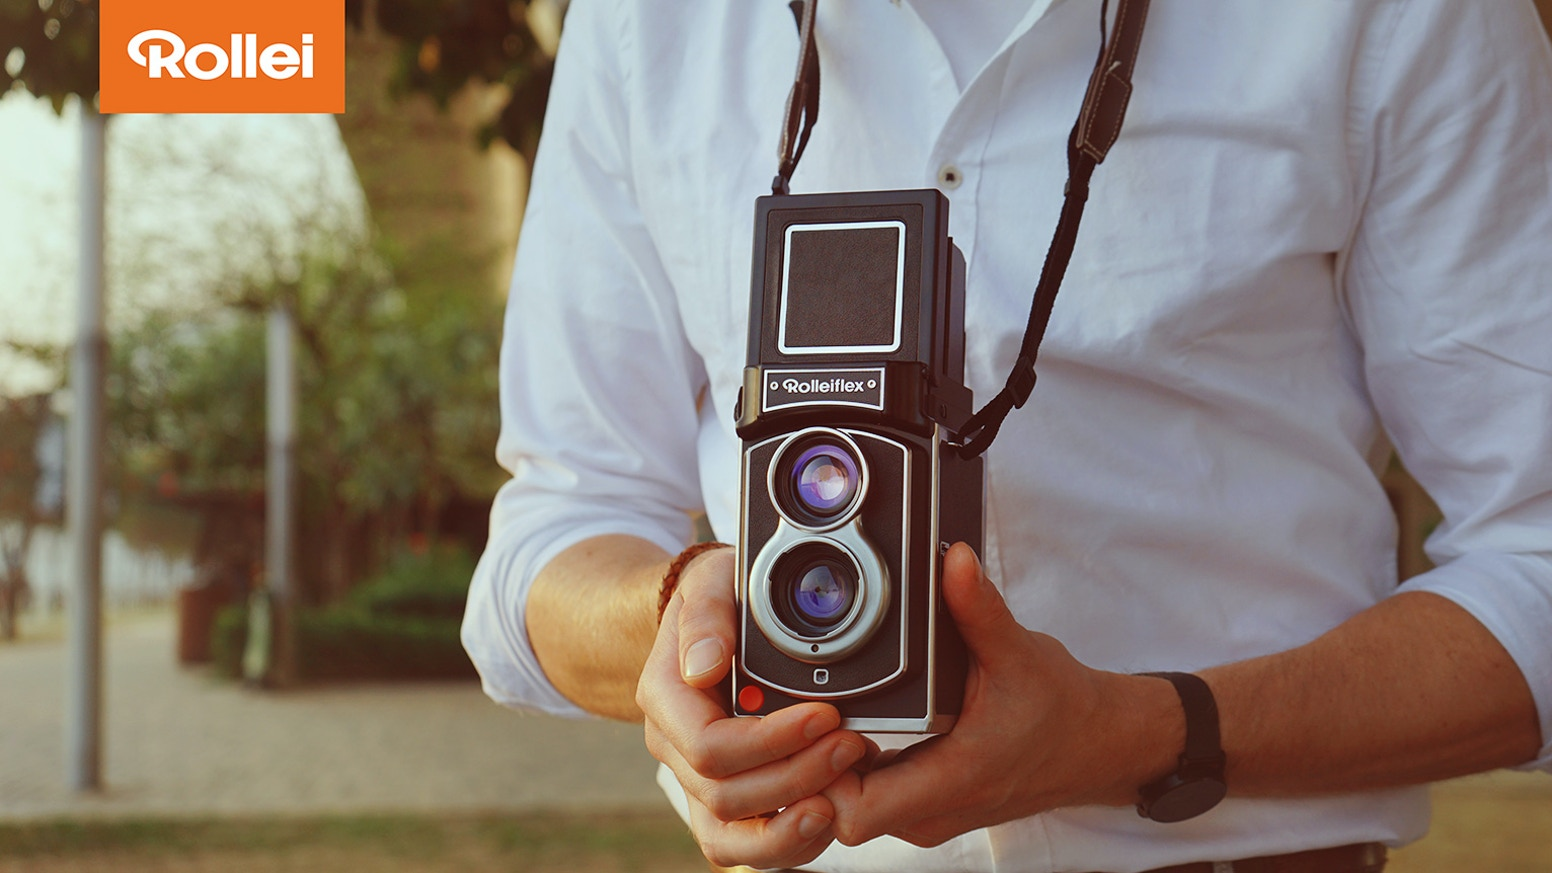 Rolleiflex™ Instant Kamera is the top crowdfunding project launched today. Rolleiflex™ Instant Kamera raised over $2326388 from 671 backers. Other top projects include Black Rose Wars, Enamel Pins from Cunning Linguist Co., The Music Box Village's newest project hits the road!...